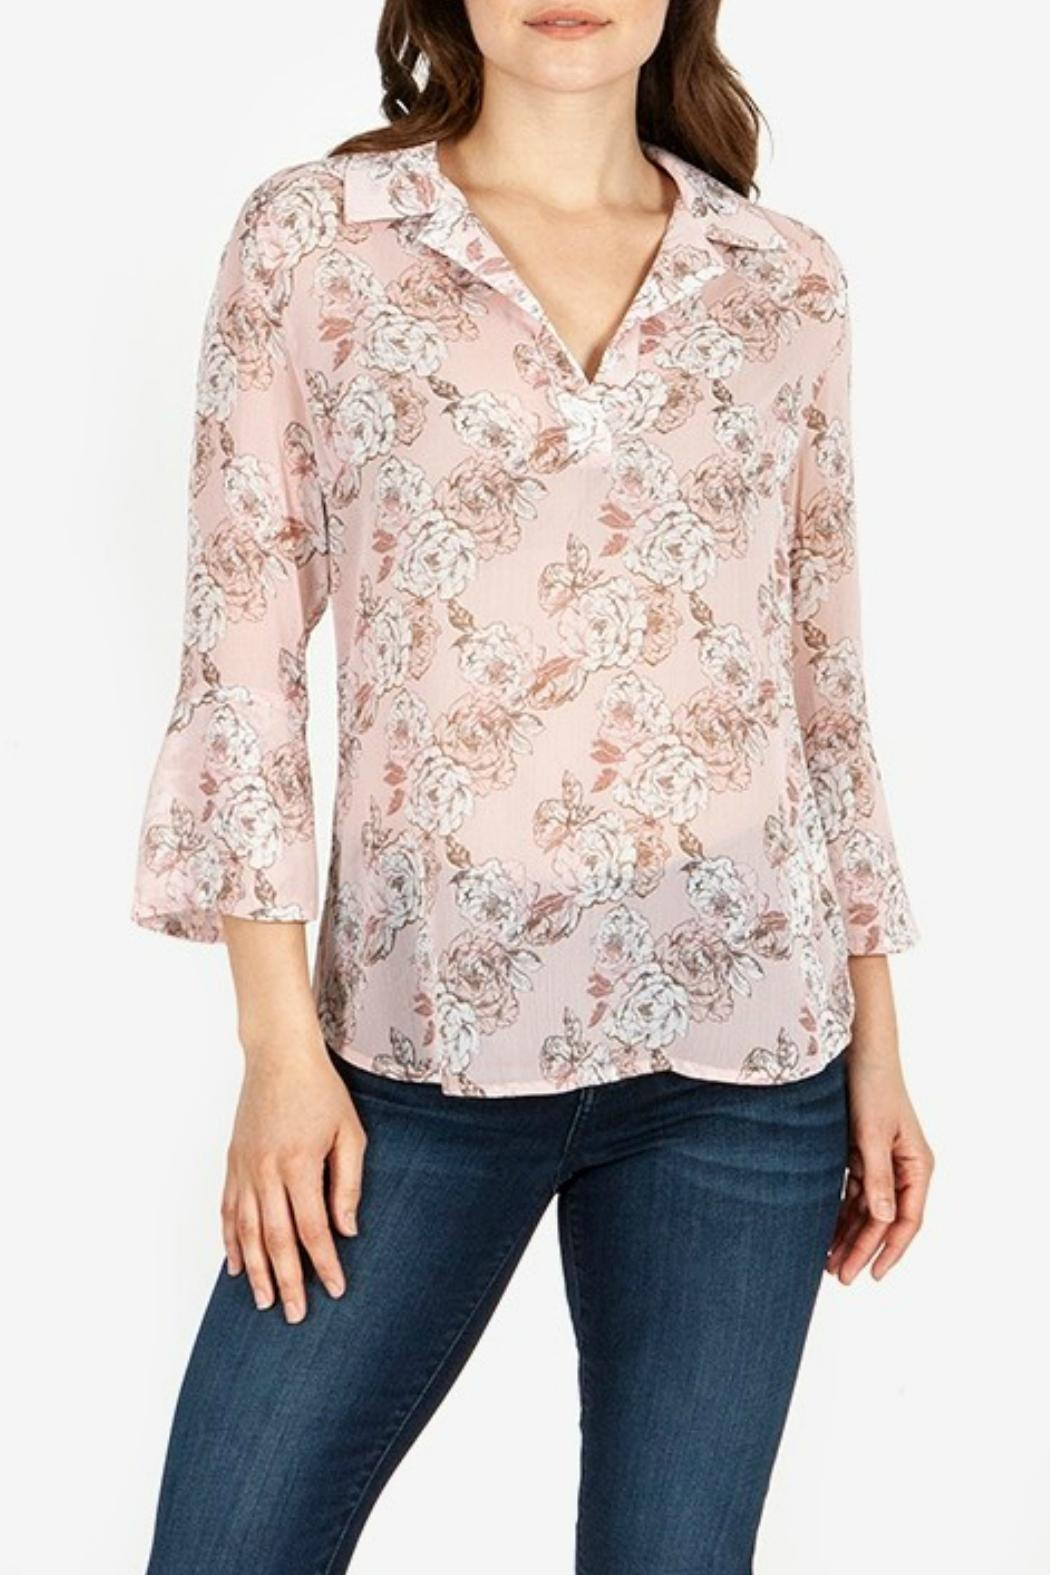 Kut from the Kloth Floral-Blouse With Flounce-Sleeves - Main Image